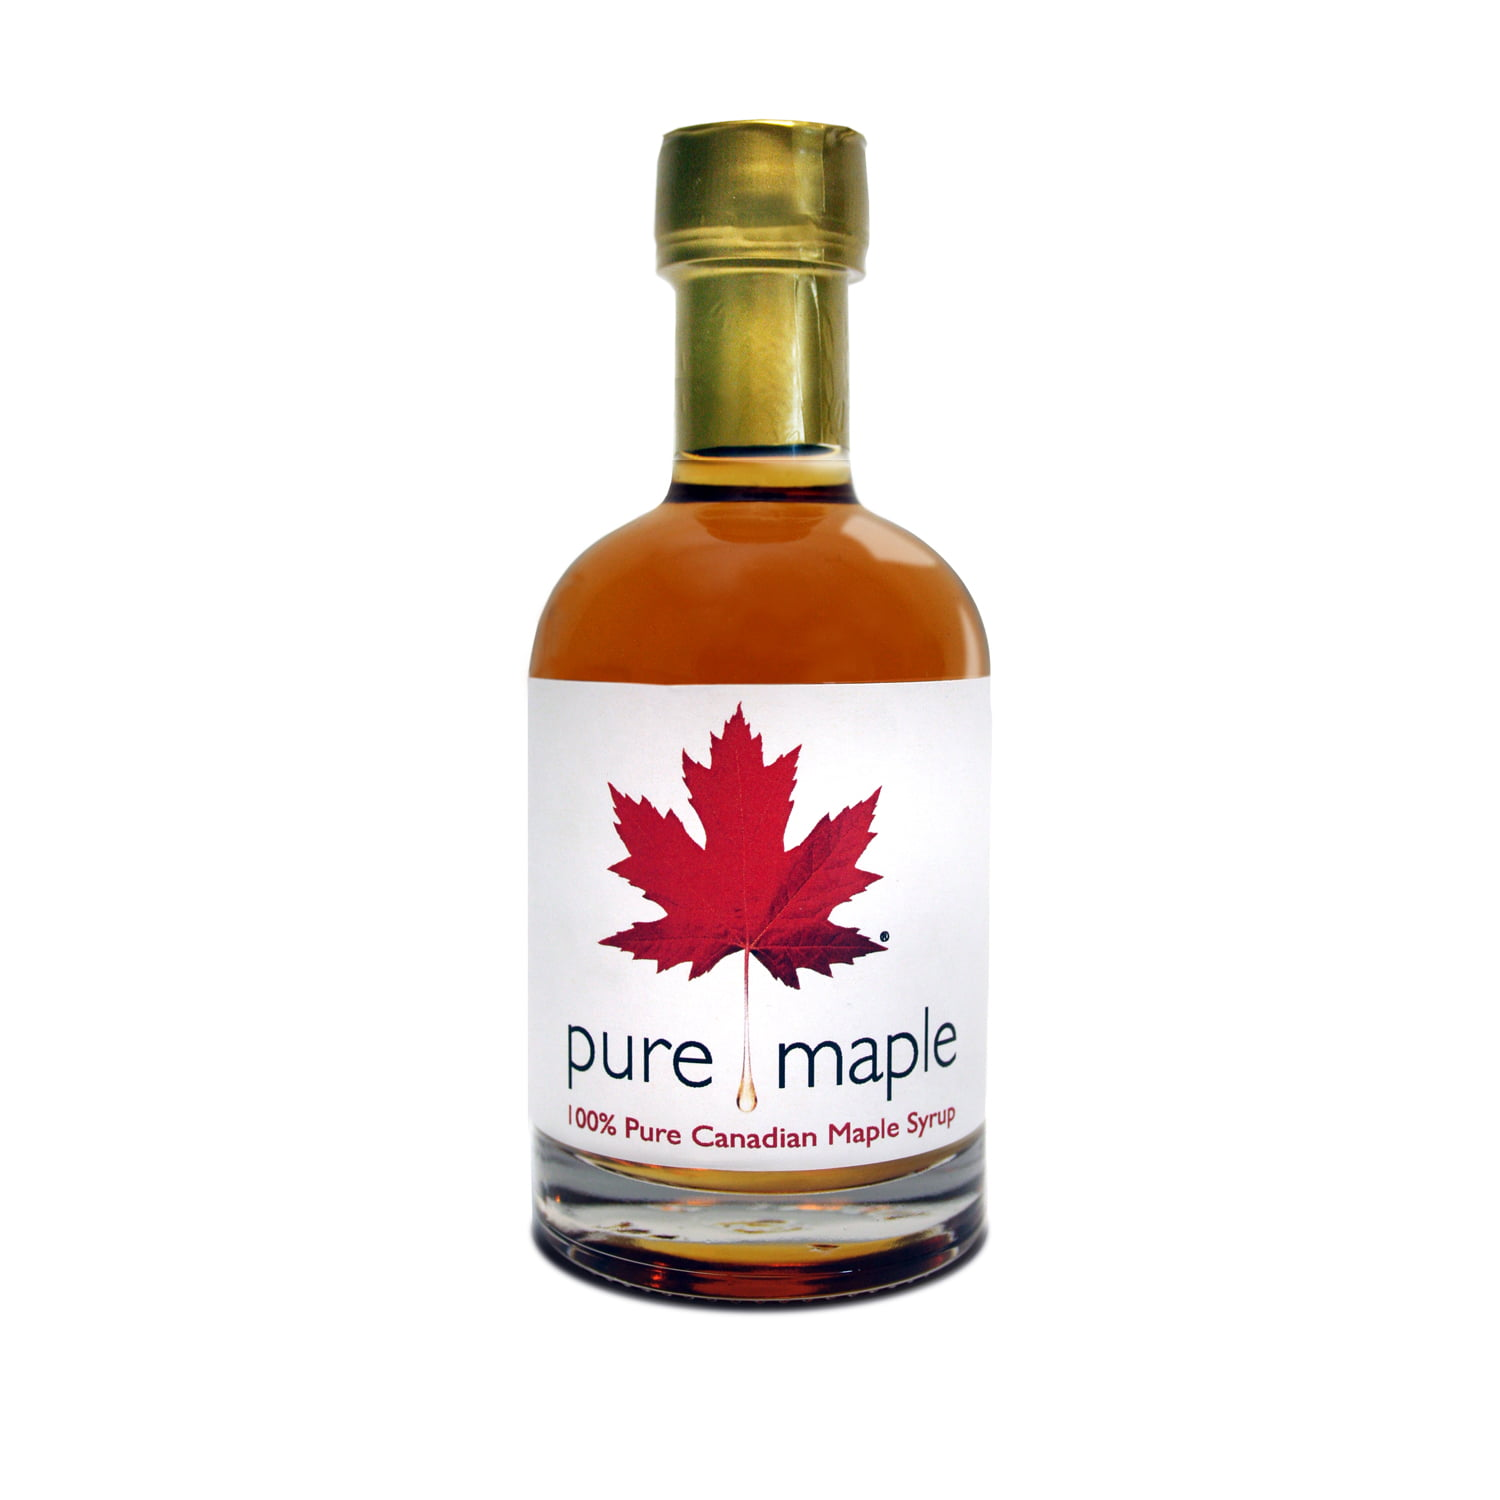 bottle of Golden Delicate Taste Pure Maple Syrup